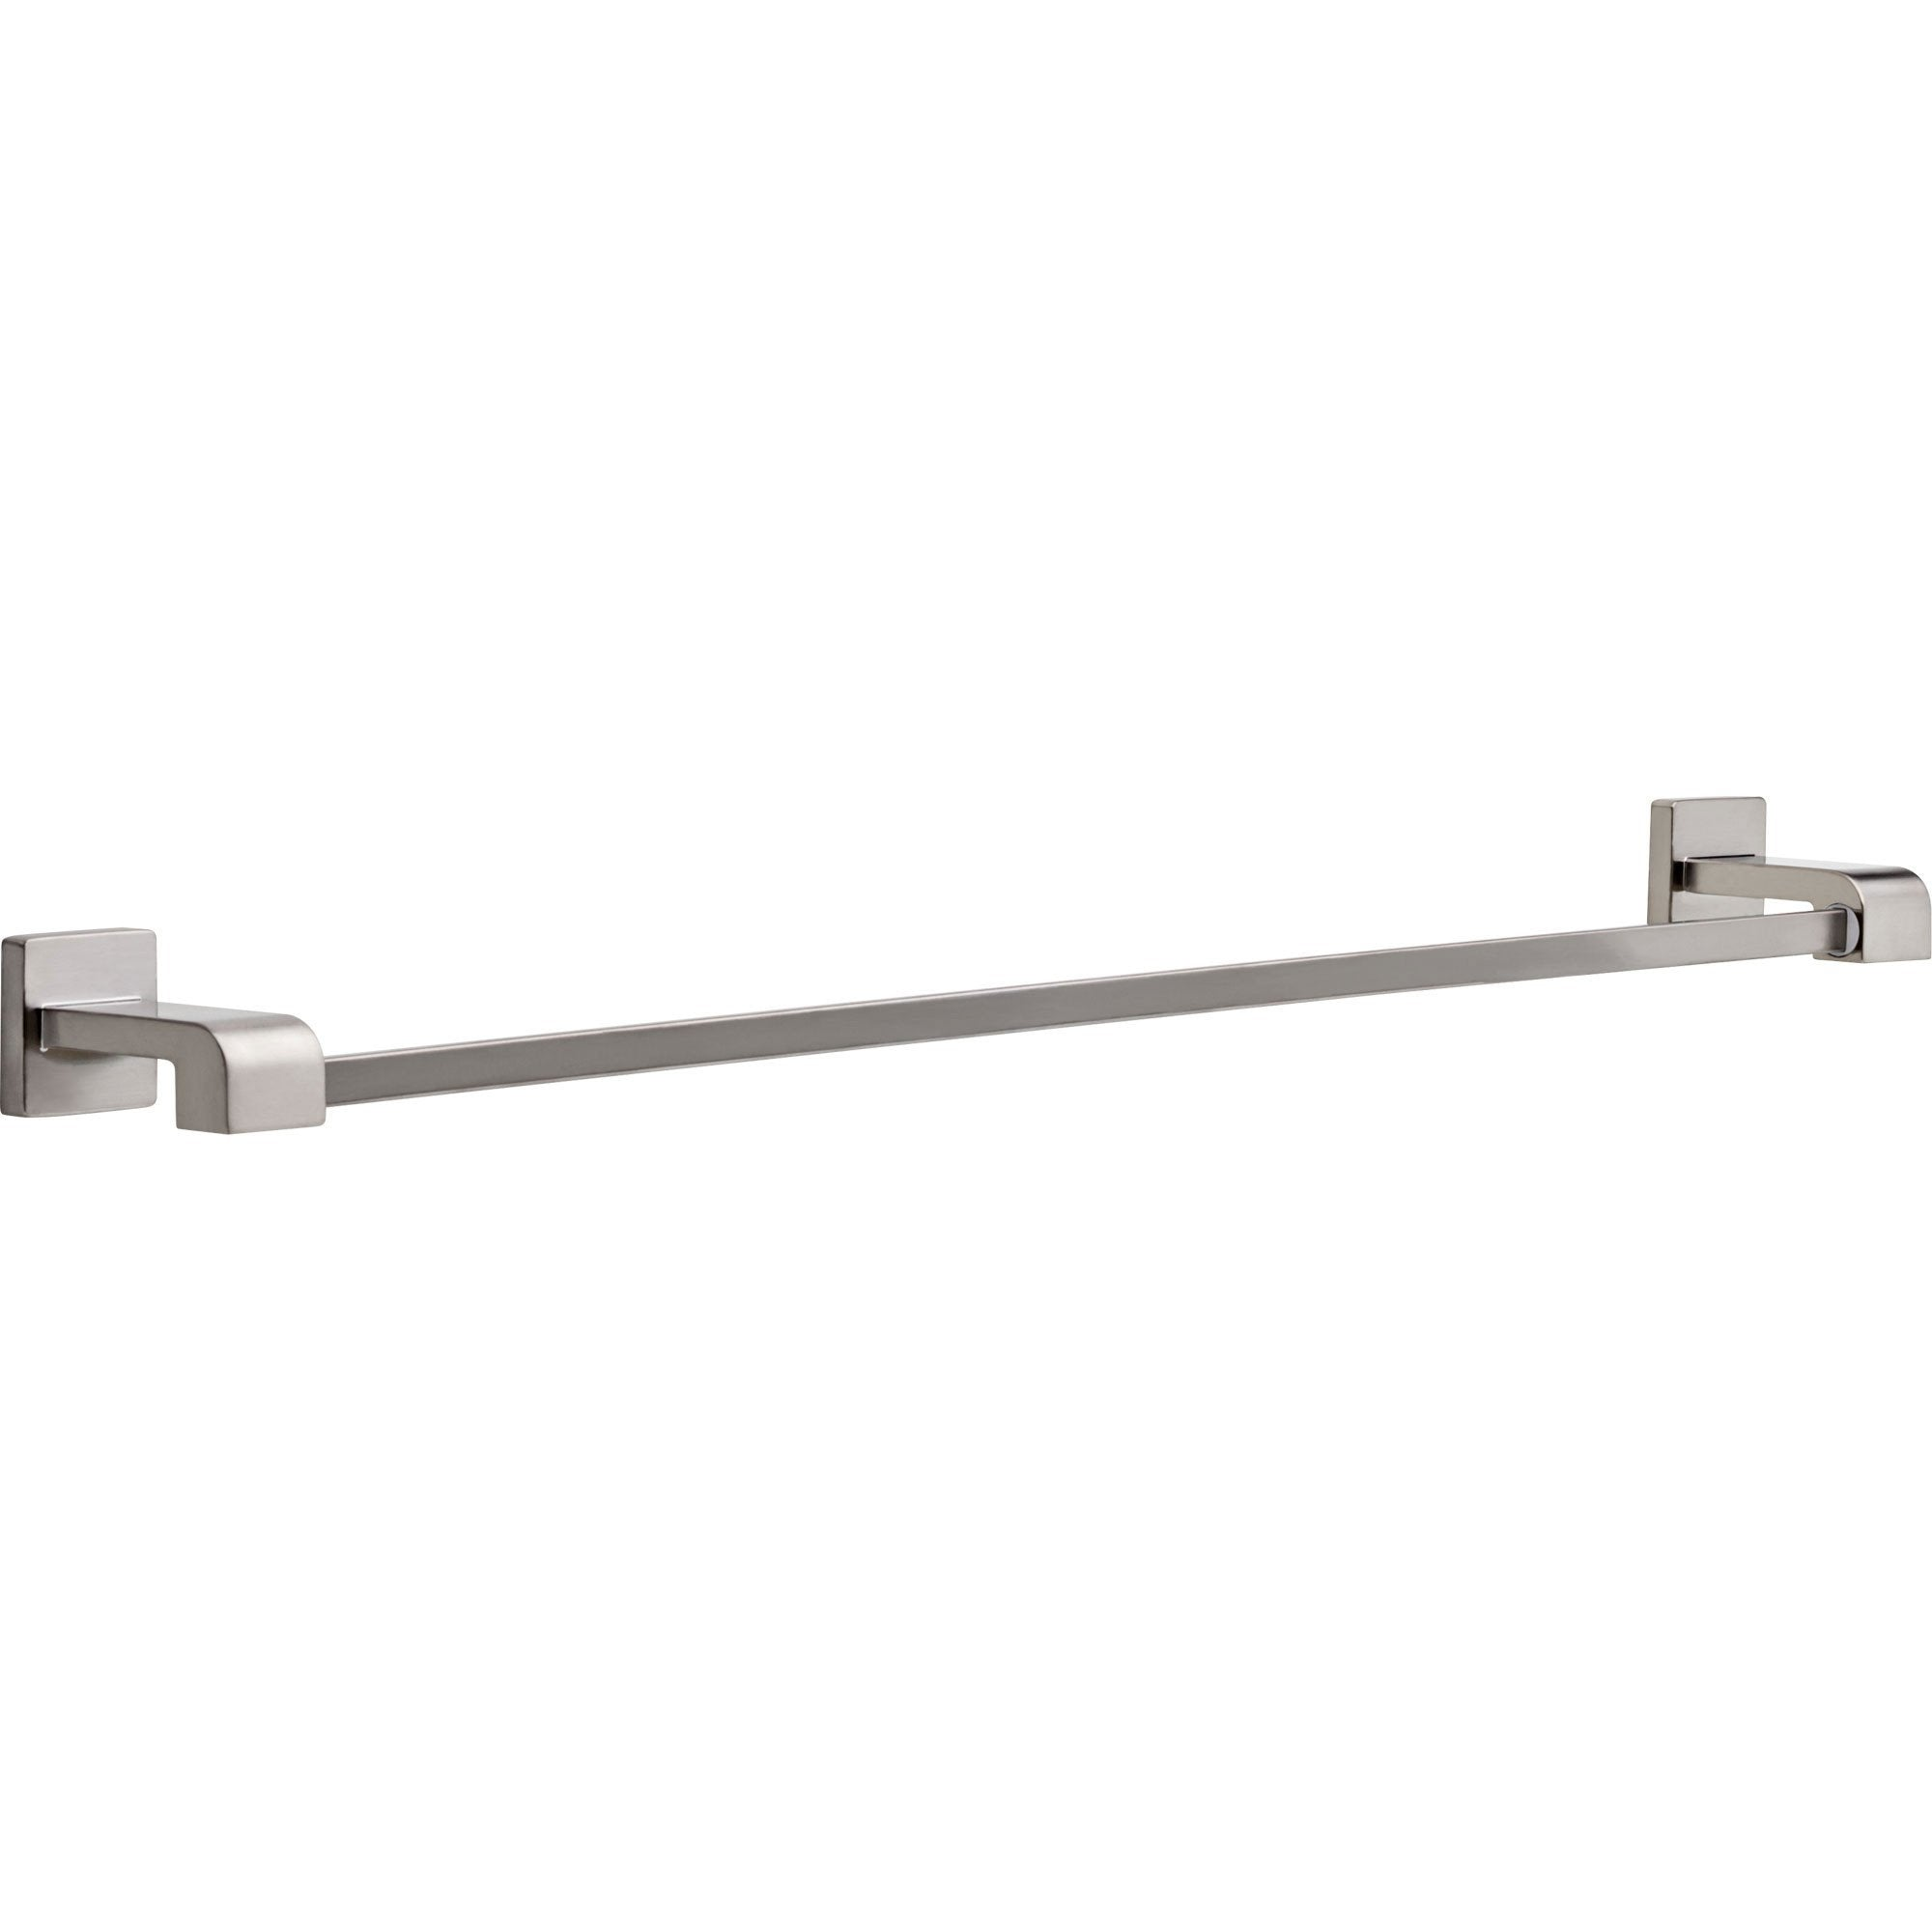 Delta Ara Modern 30 inch Stainless Steel Finish Single Towel Bar 638878